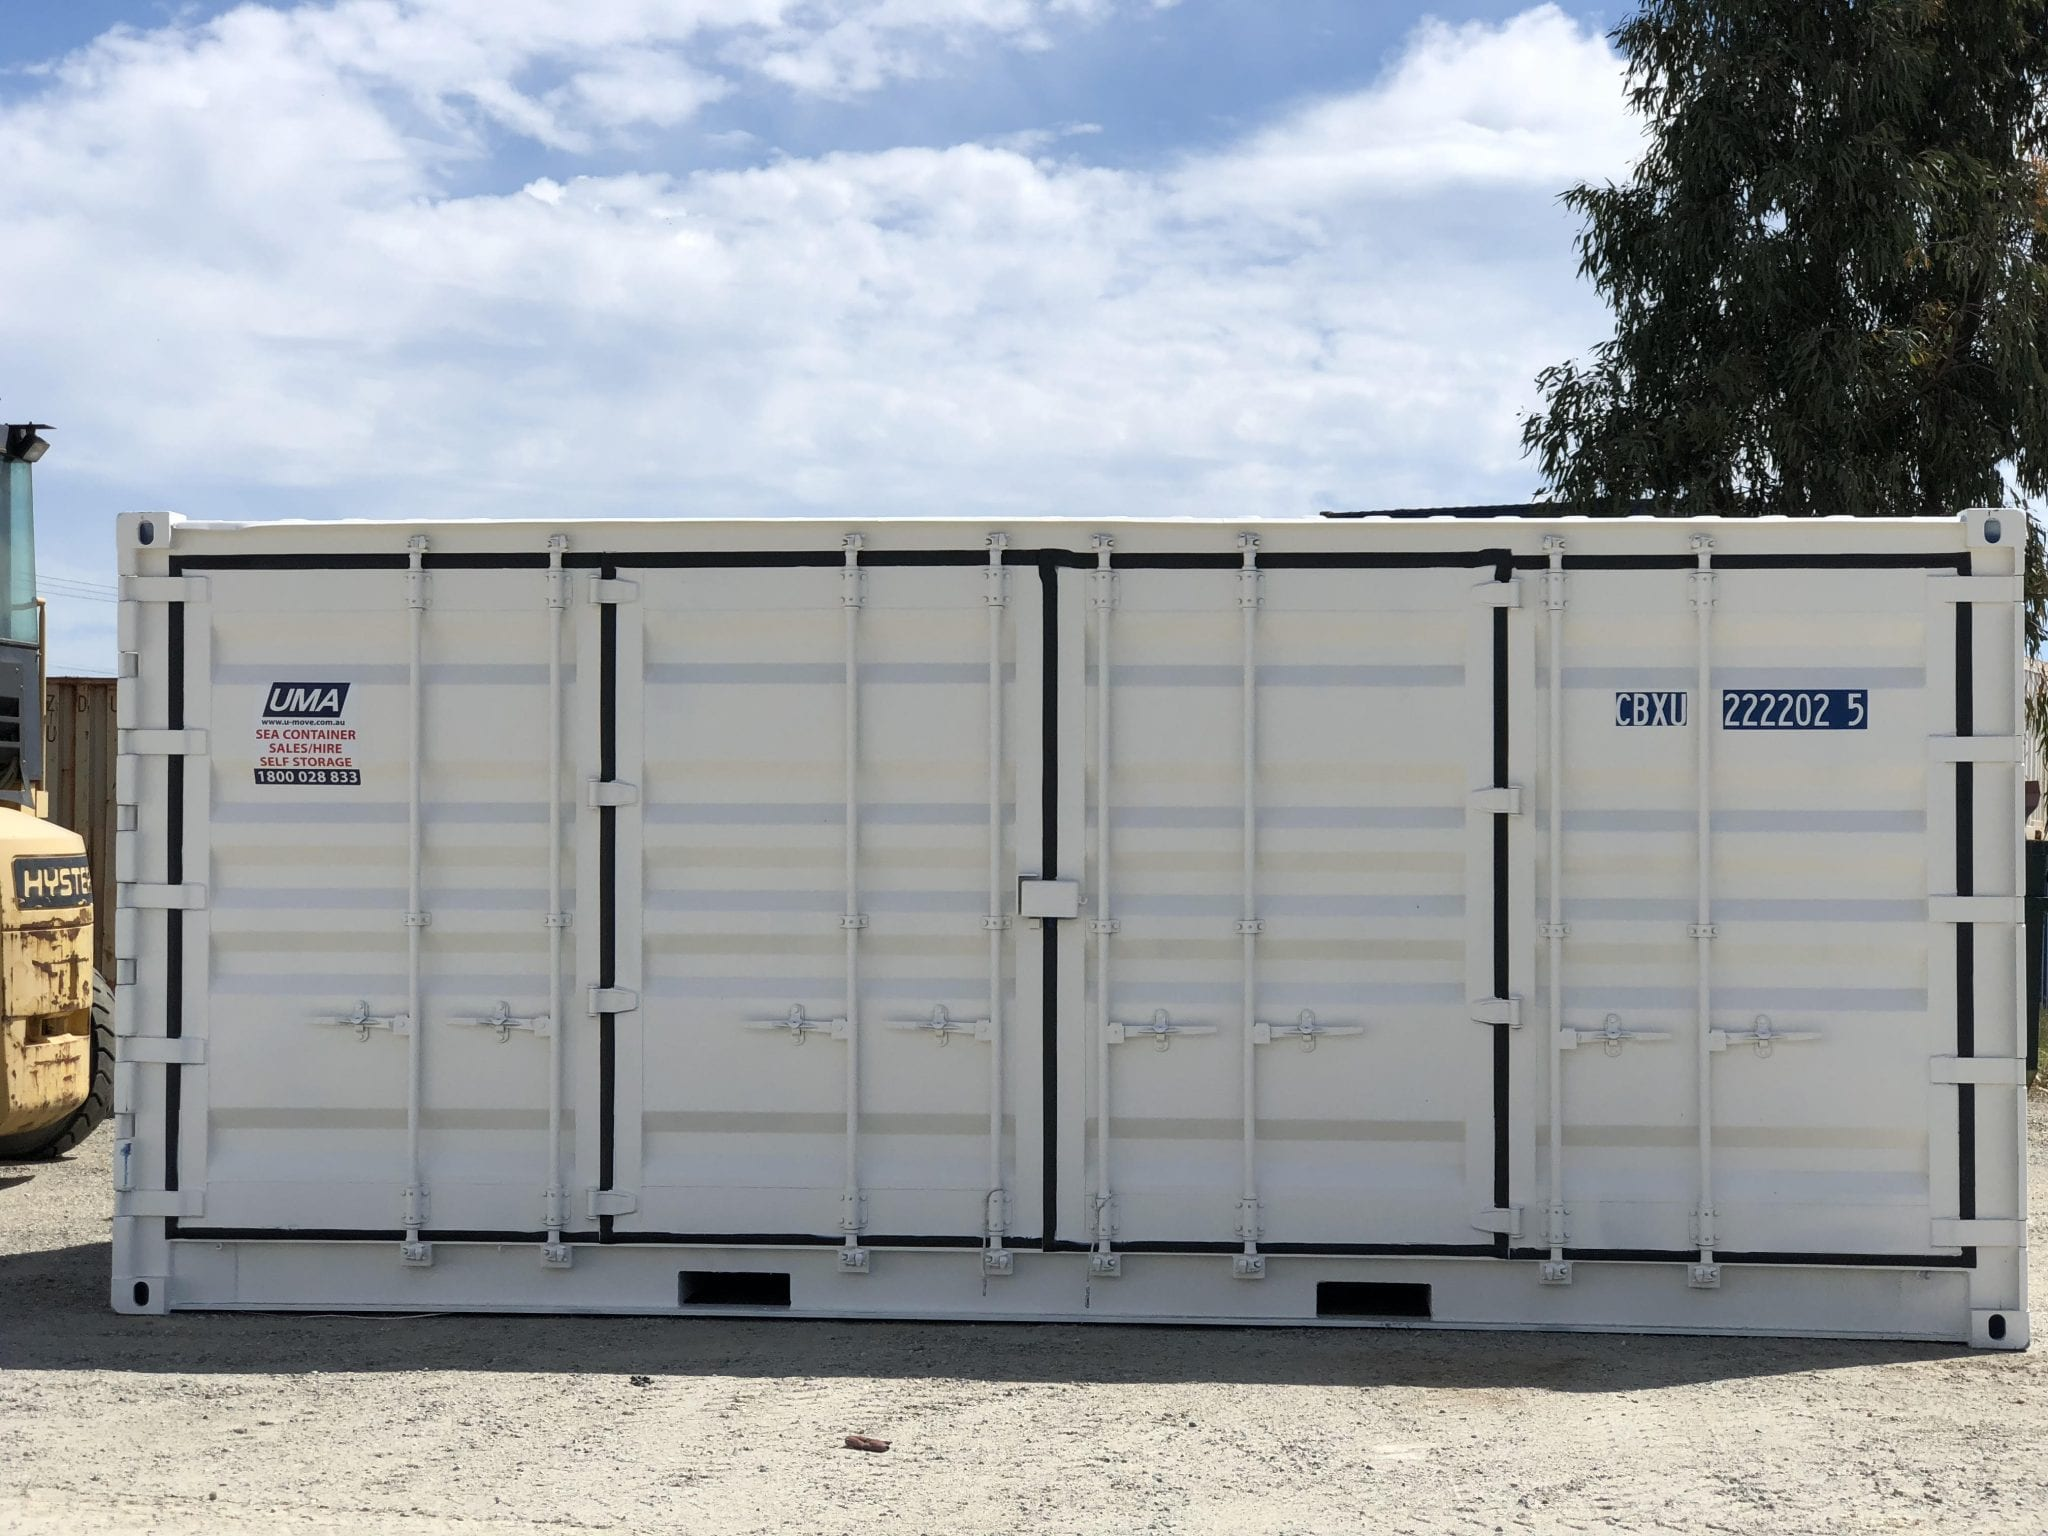 Storage Rental Perth Commercial Storage Perth 10 20 40ft Containers U Move Australia